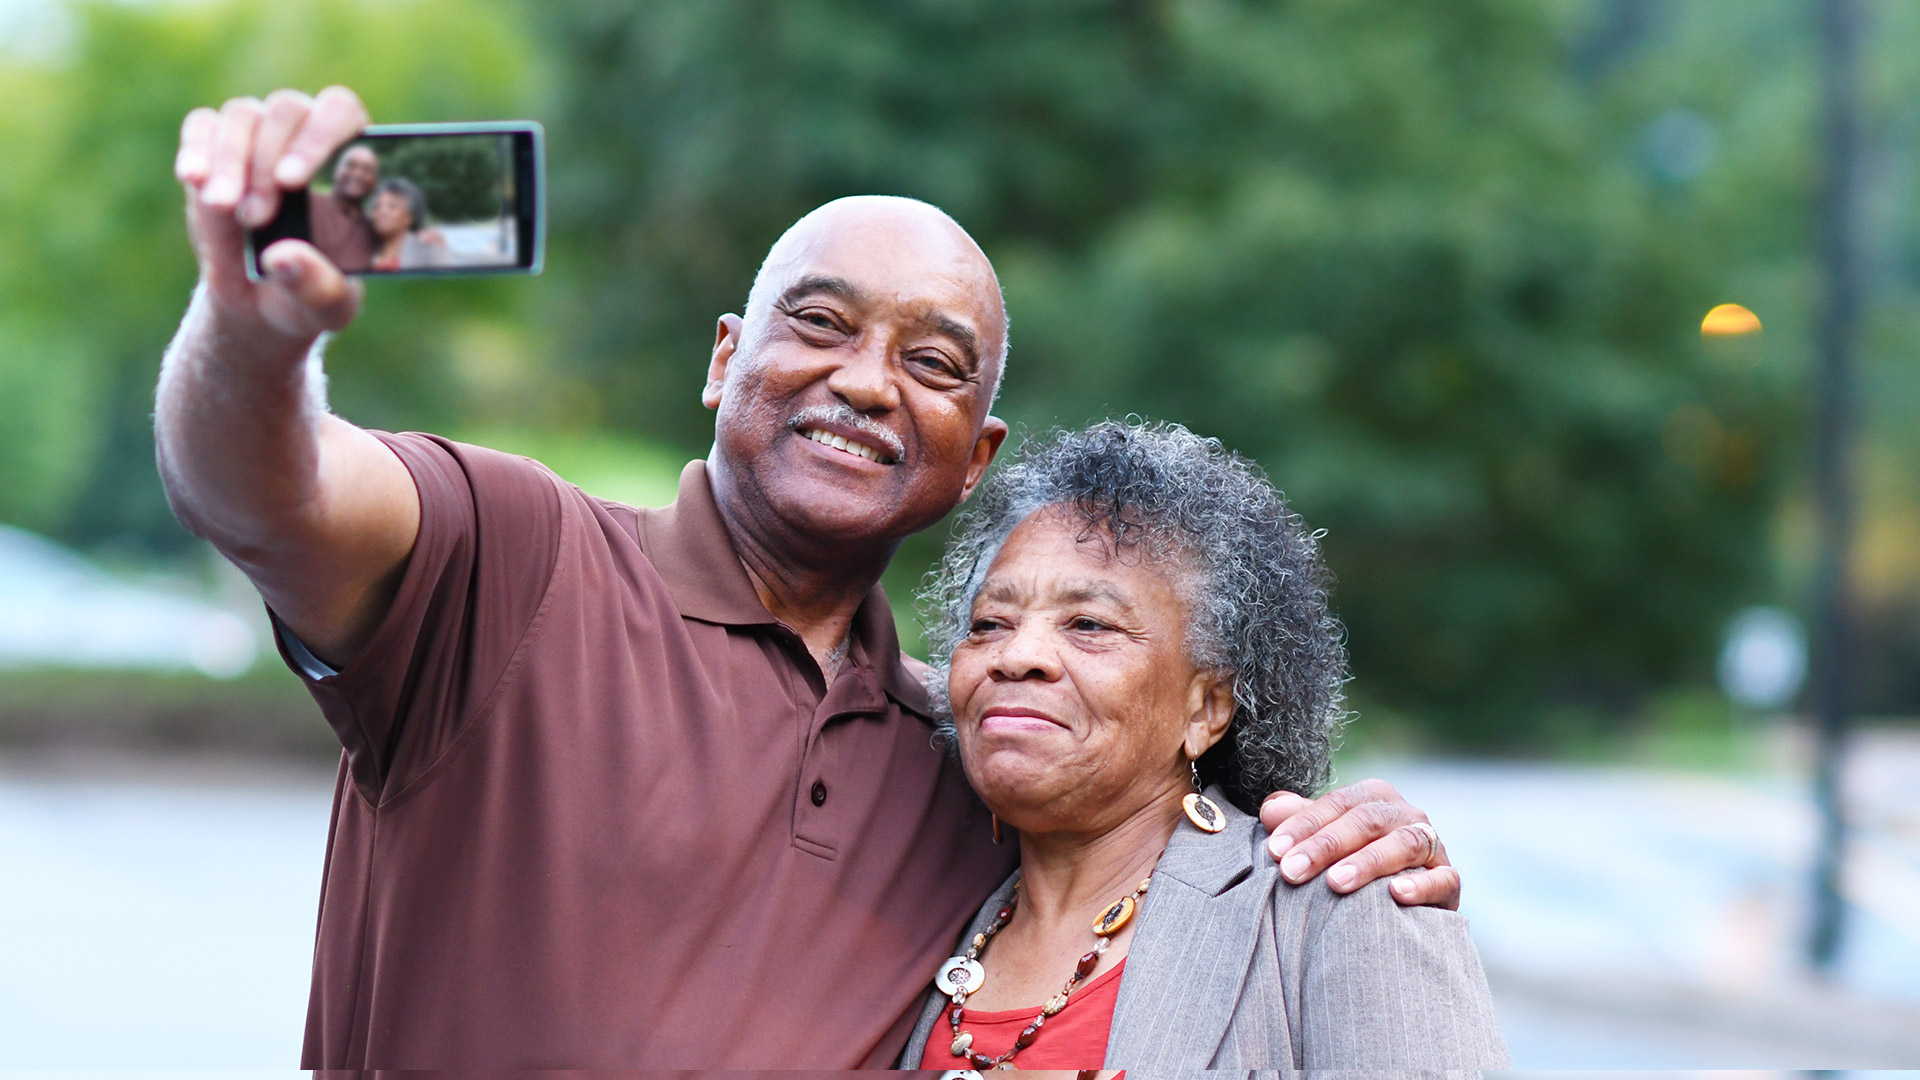 Two elderly people taking a selfie